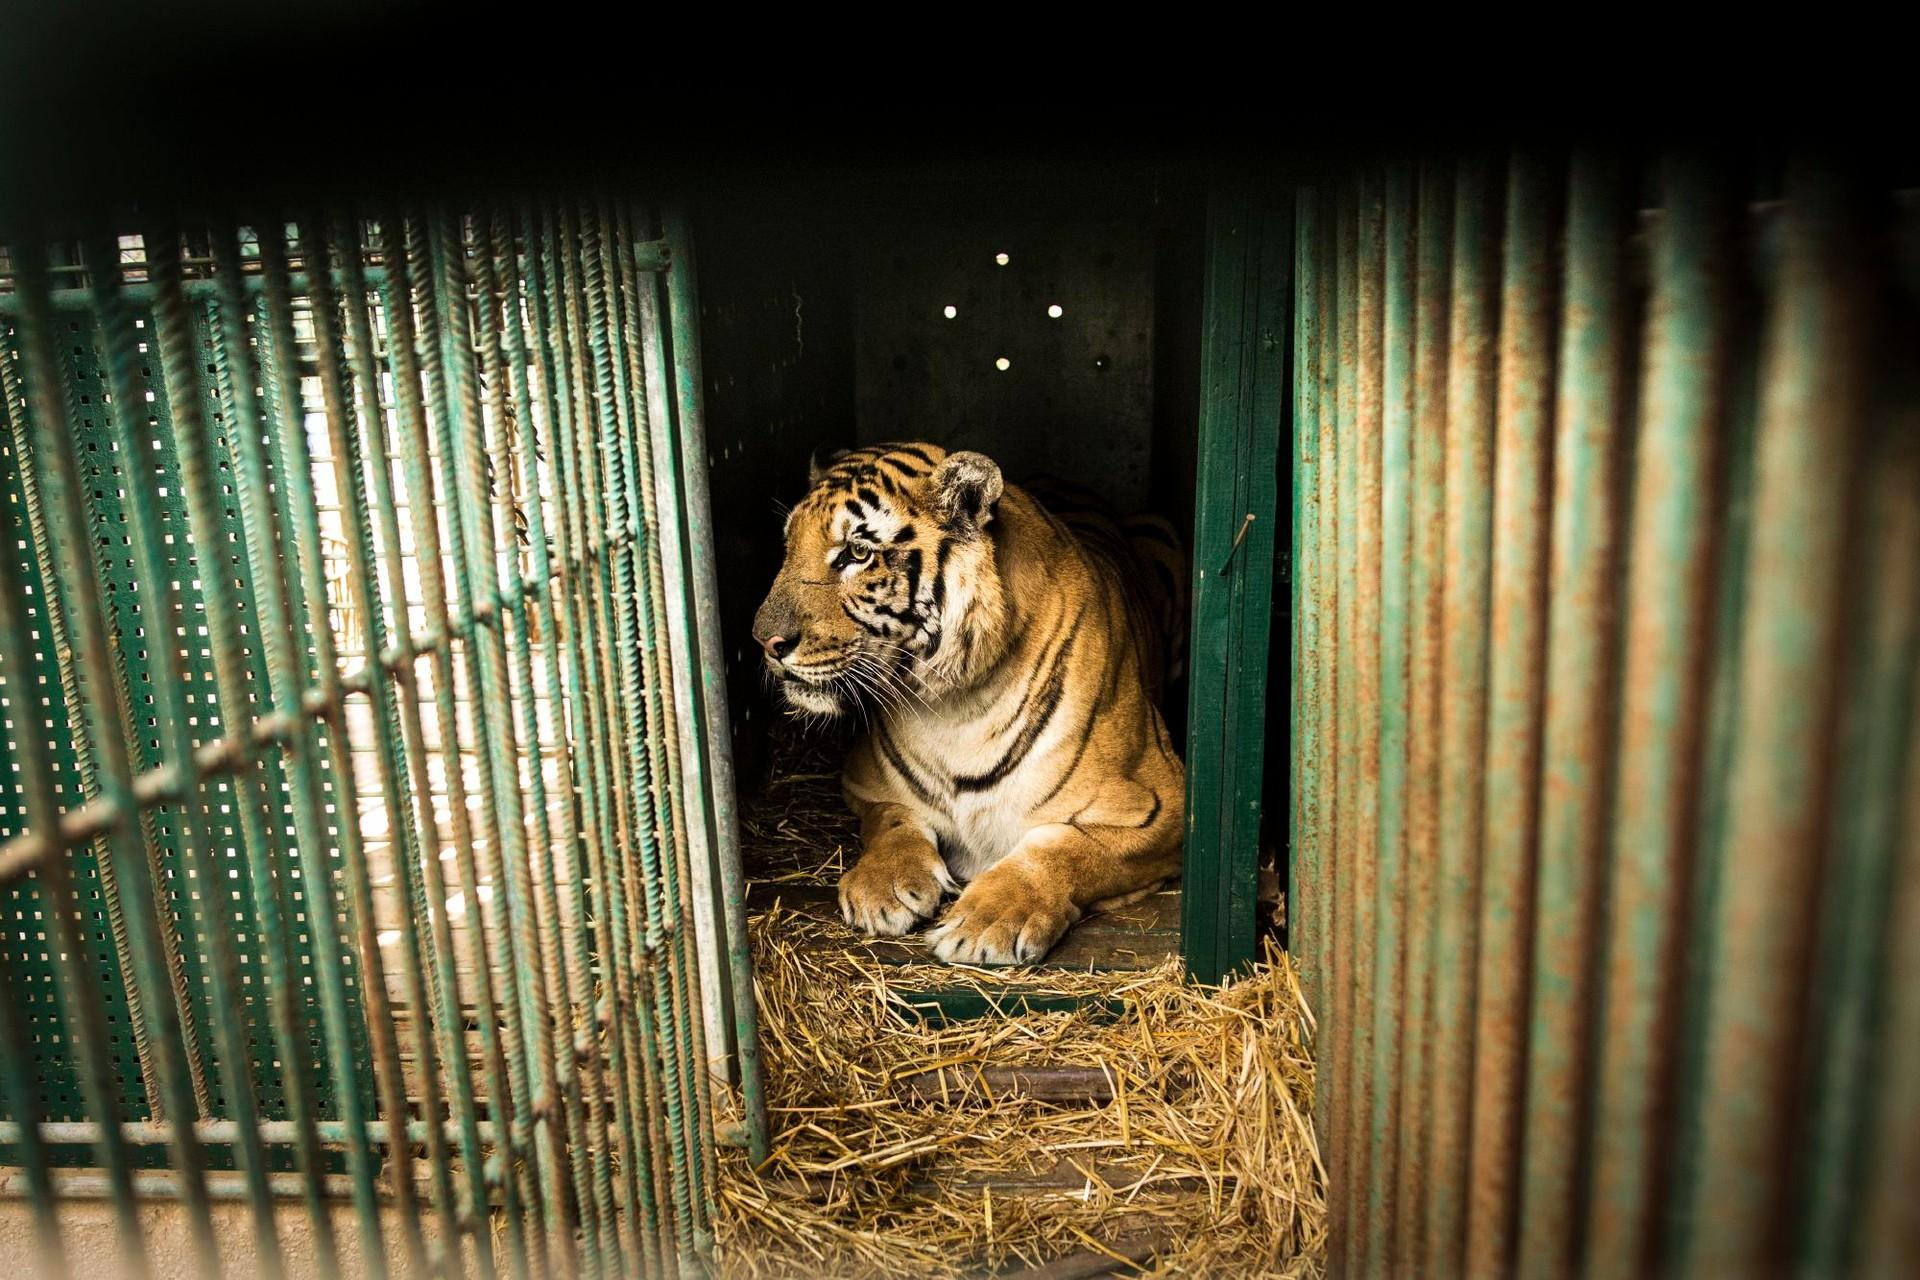 Tiger in cage in Gaza